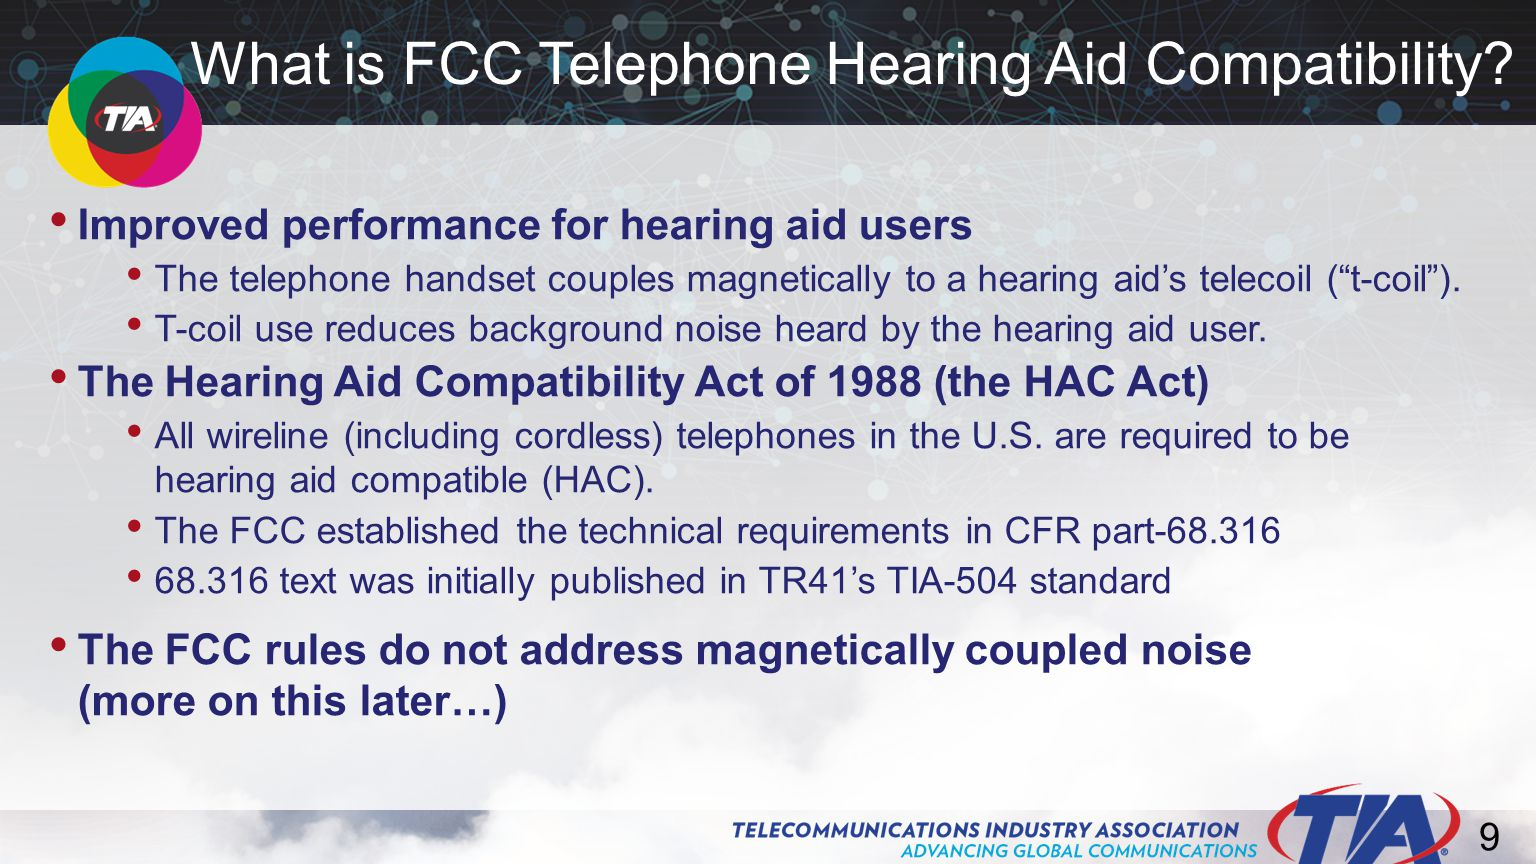 20 October 25, 2012 TIA filed a Petition for Rulemaking with the FCC.